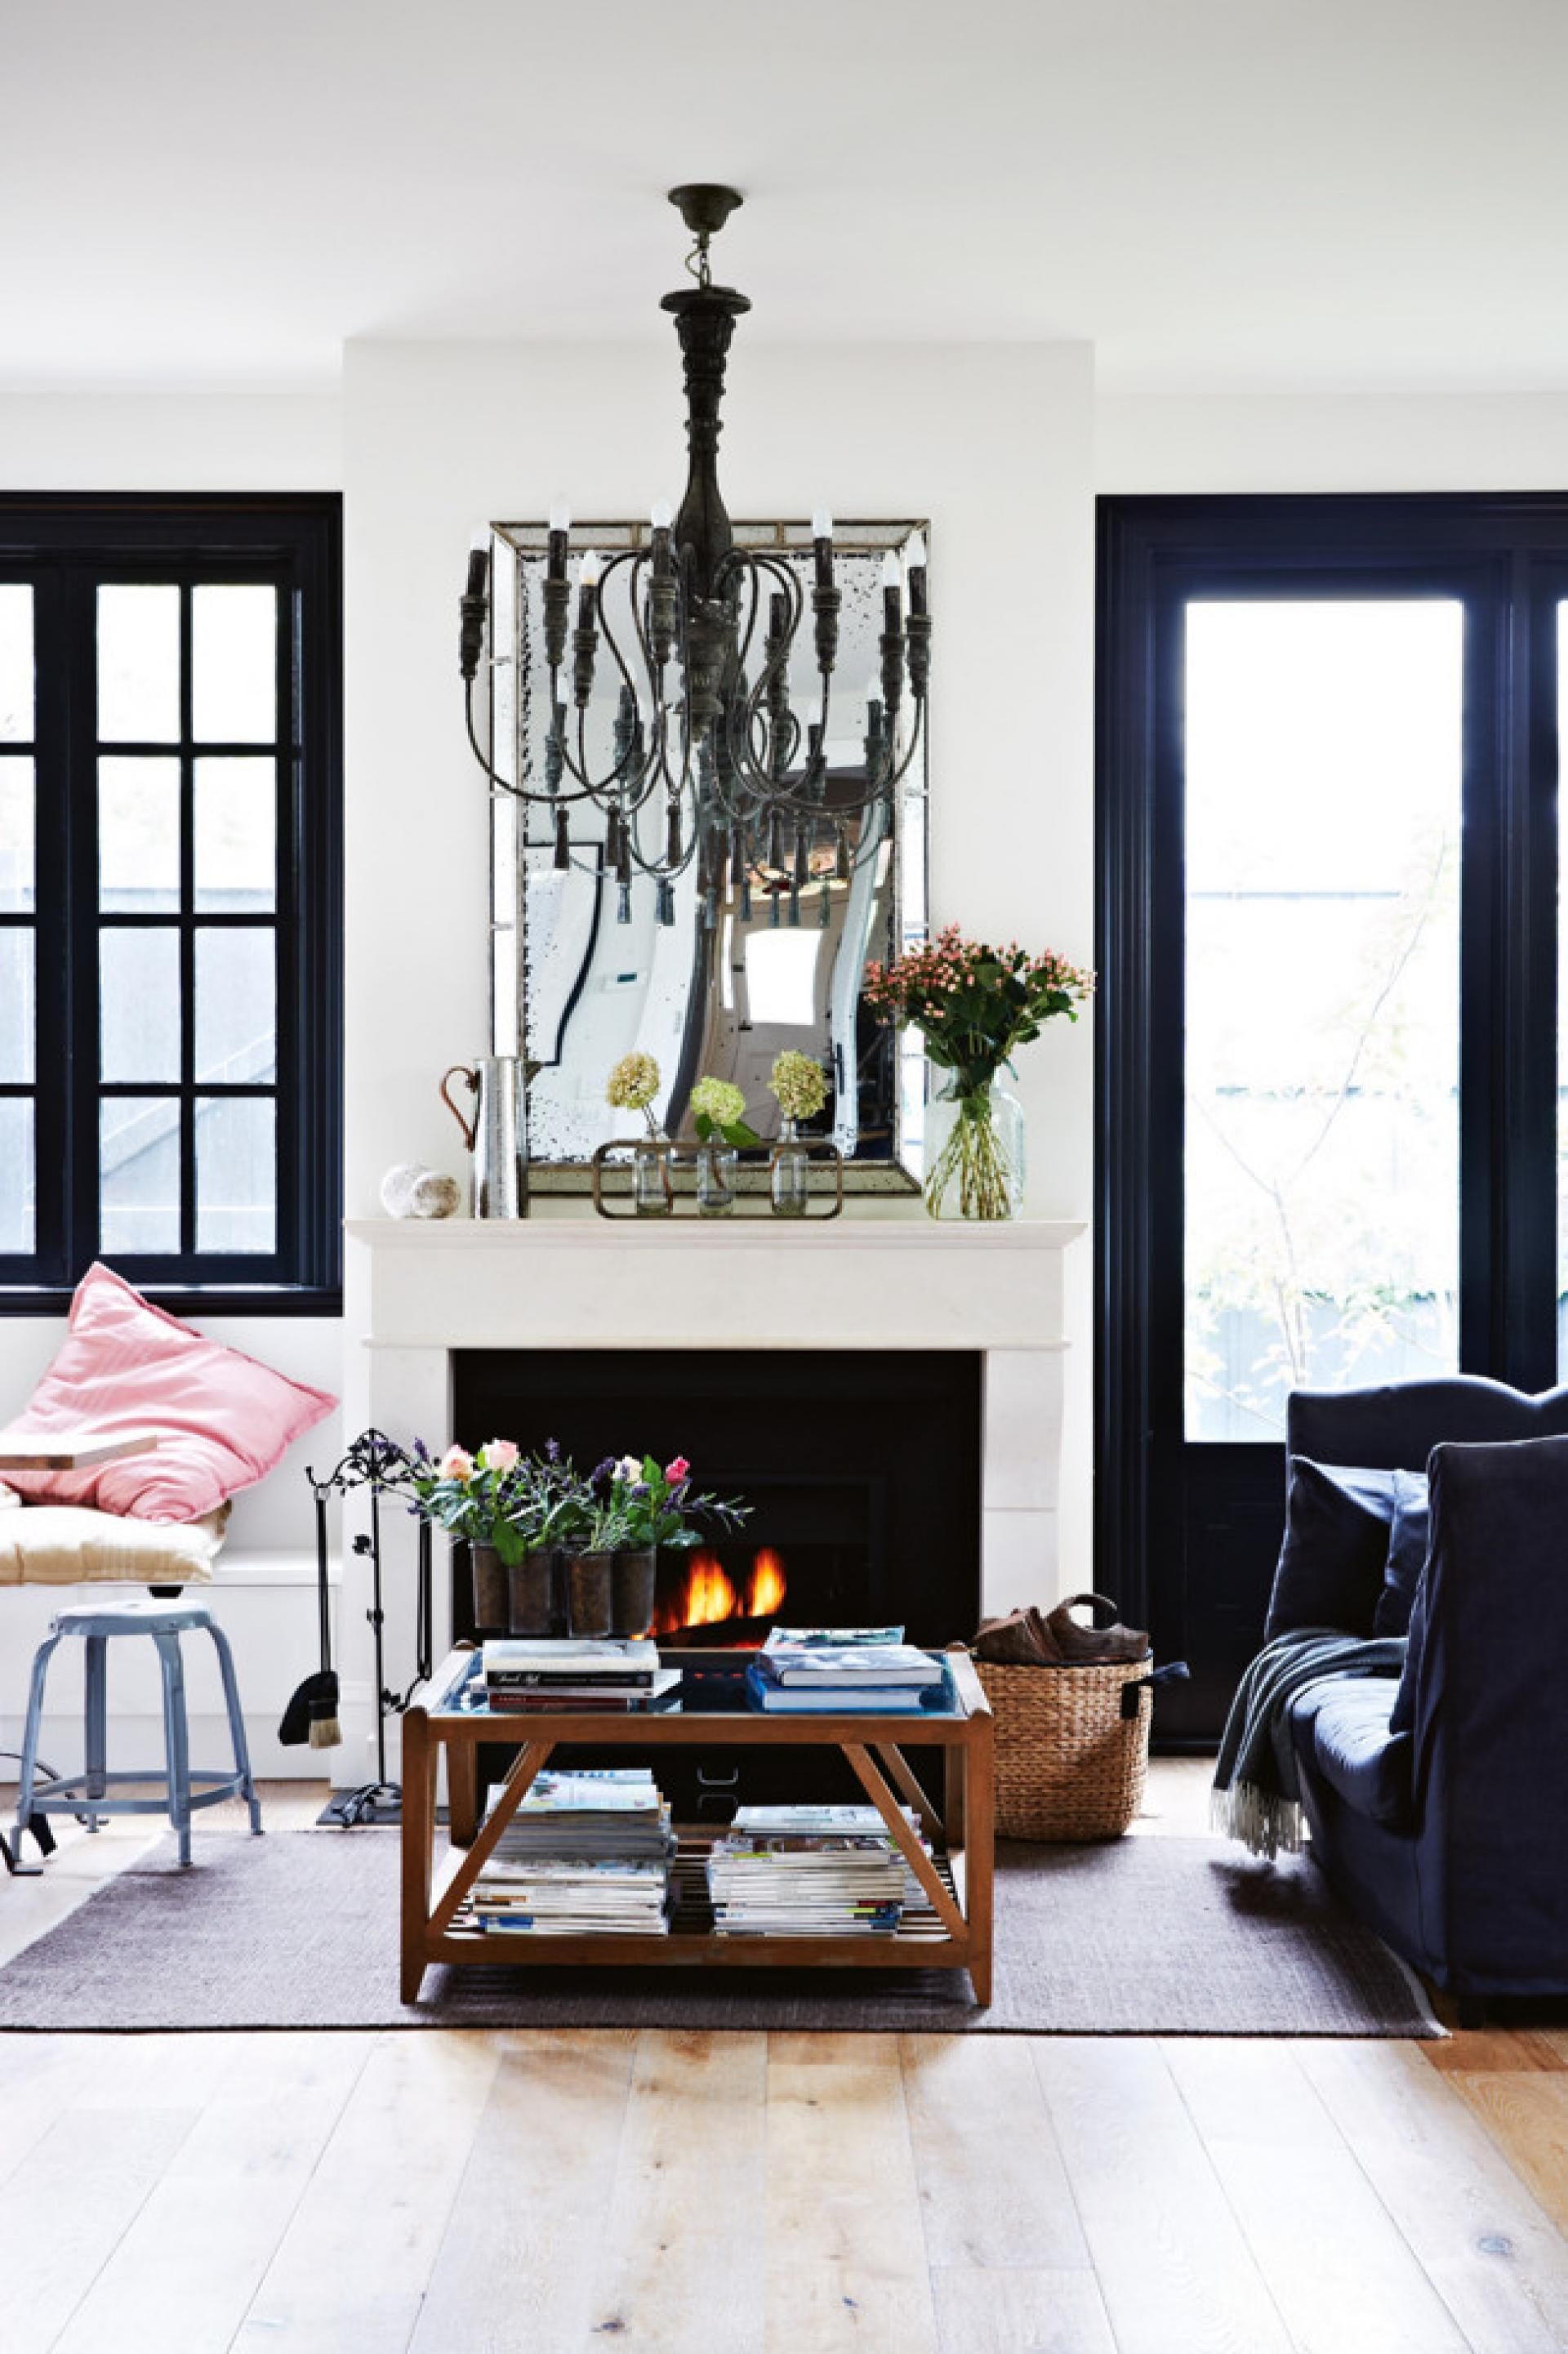 Home inspiration french style living a side of vogue for French inspired homes